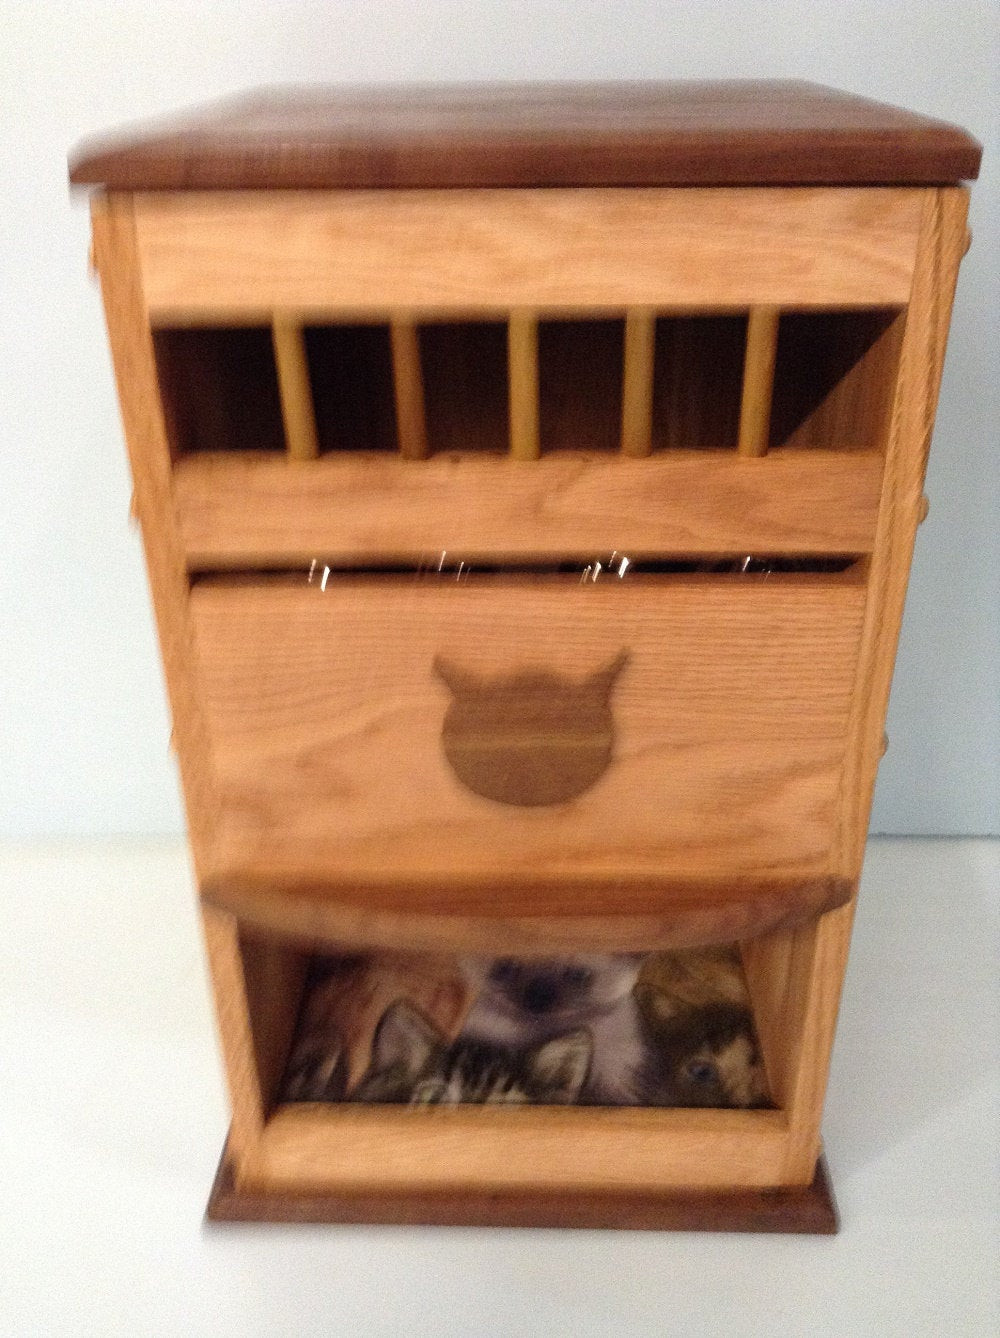 Best ideas about Dog Proof Cat Feeder DIY . Save or Pin DELUXE DOG proof CAT feeder bed Now.